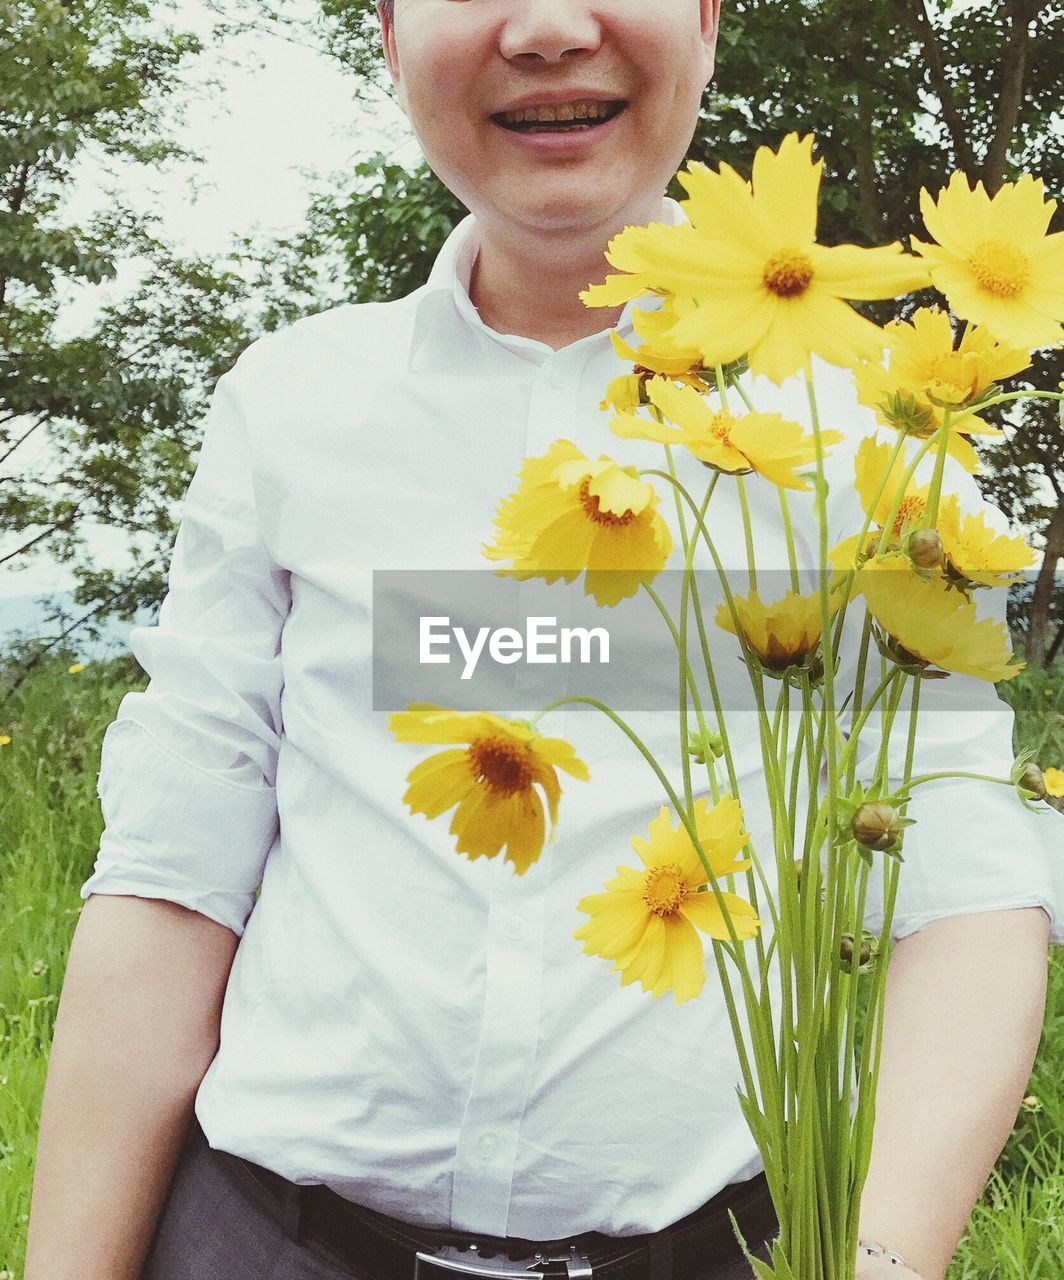 flower, yellow, nature, one person, growth, outdoors, fragility, childhood, beauty in nature, real people, flower head, petal, freshness, front view, day, girls, sunflower, smiling, close-up